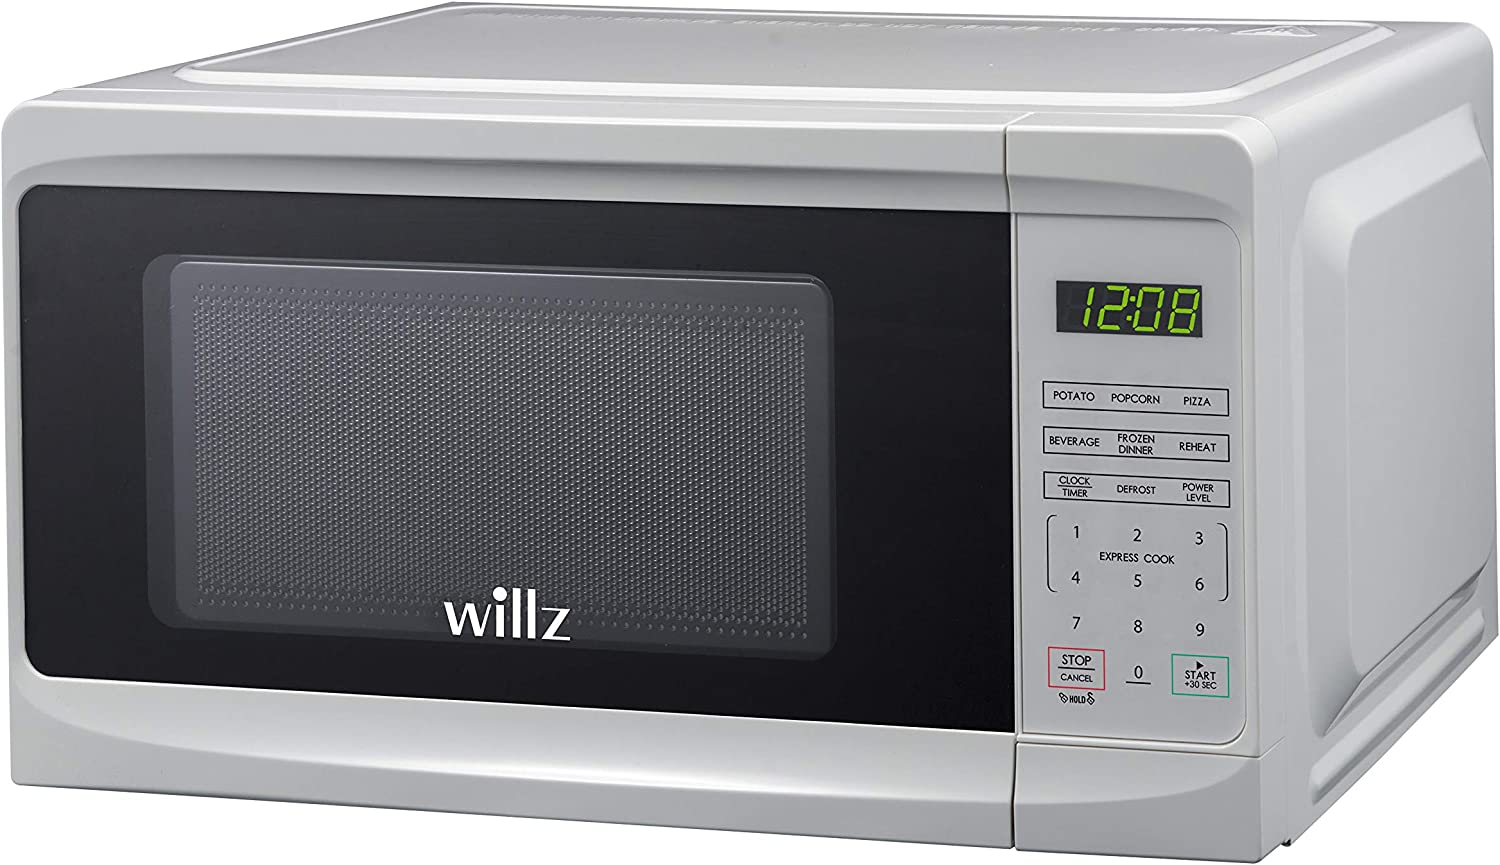 Willz WLCMD207WE-07 Countertop Microwave Oven, 0.7 Cu.Ft/700W Microwave Oven, 6 Cooking Programs LED Lighting Push Button, 1 Glass Tray, 1 Roller Ring, 1 Shaft, 1 Power Cord, White